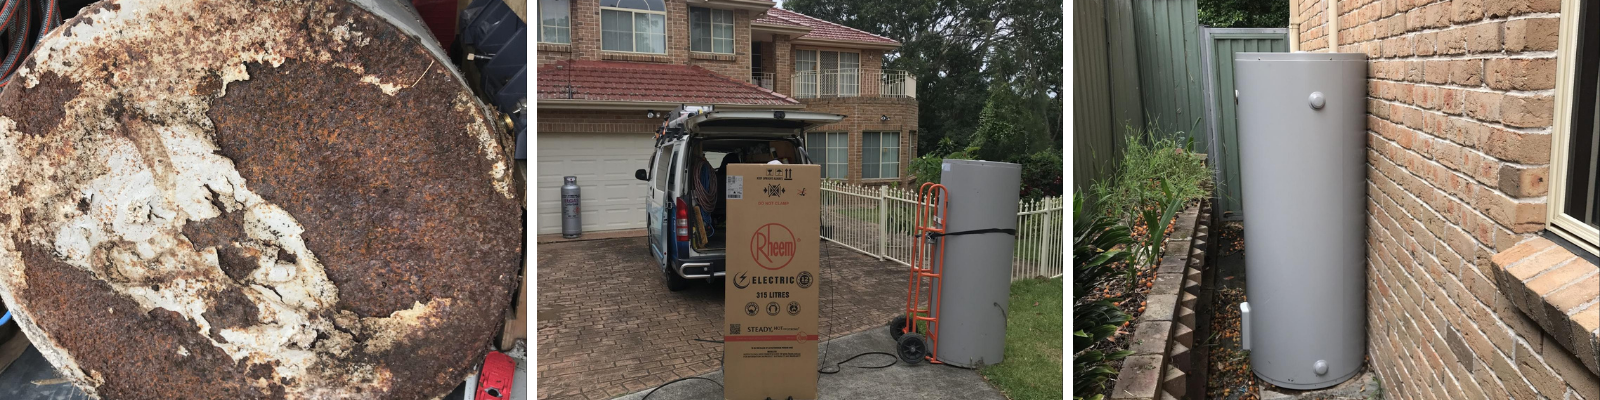 Rusty old water heater being replaced